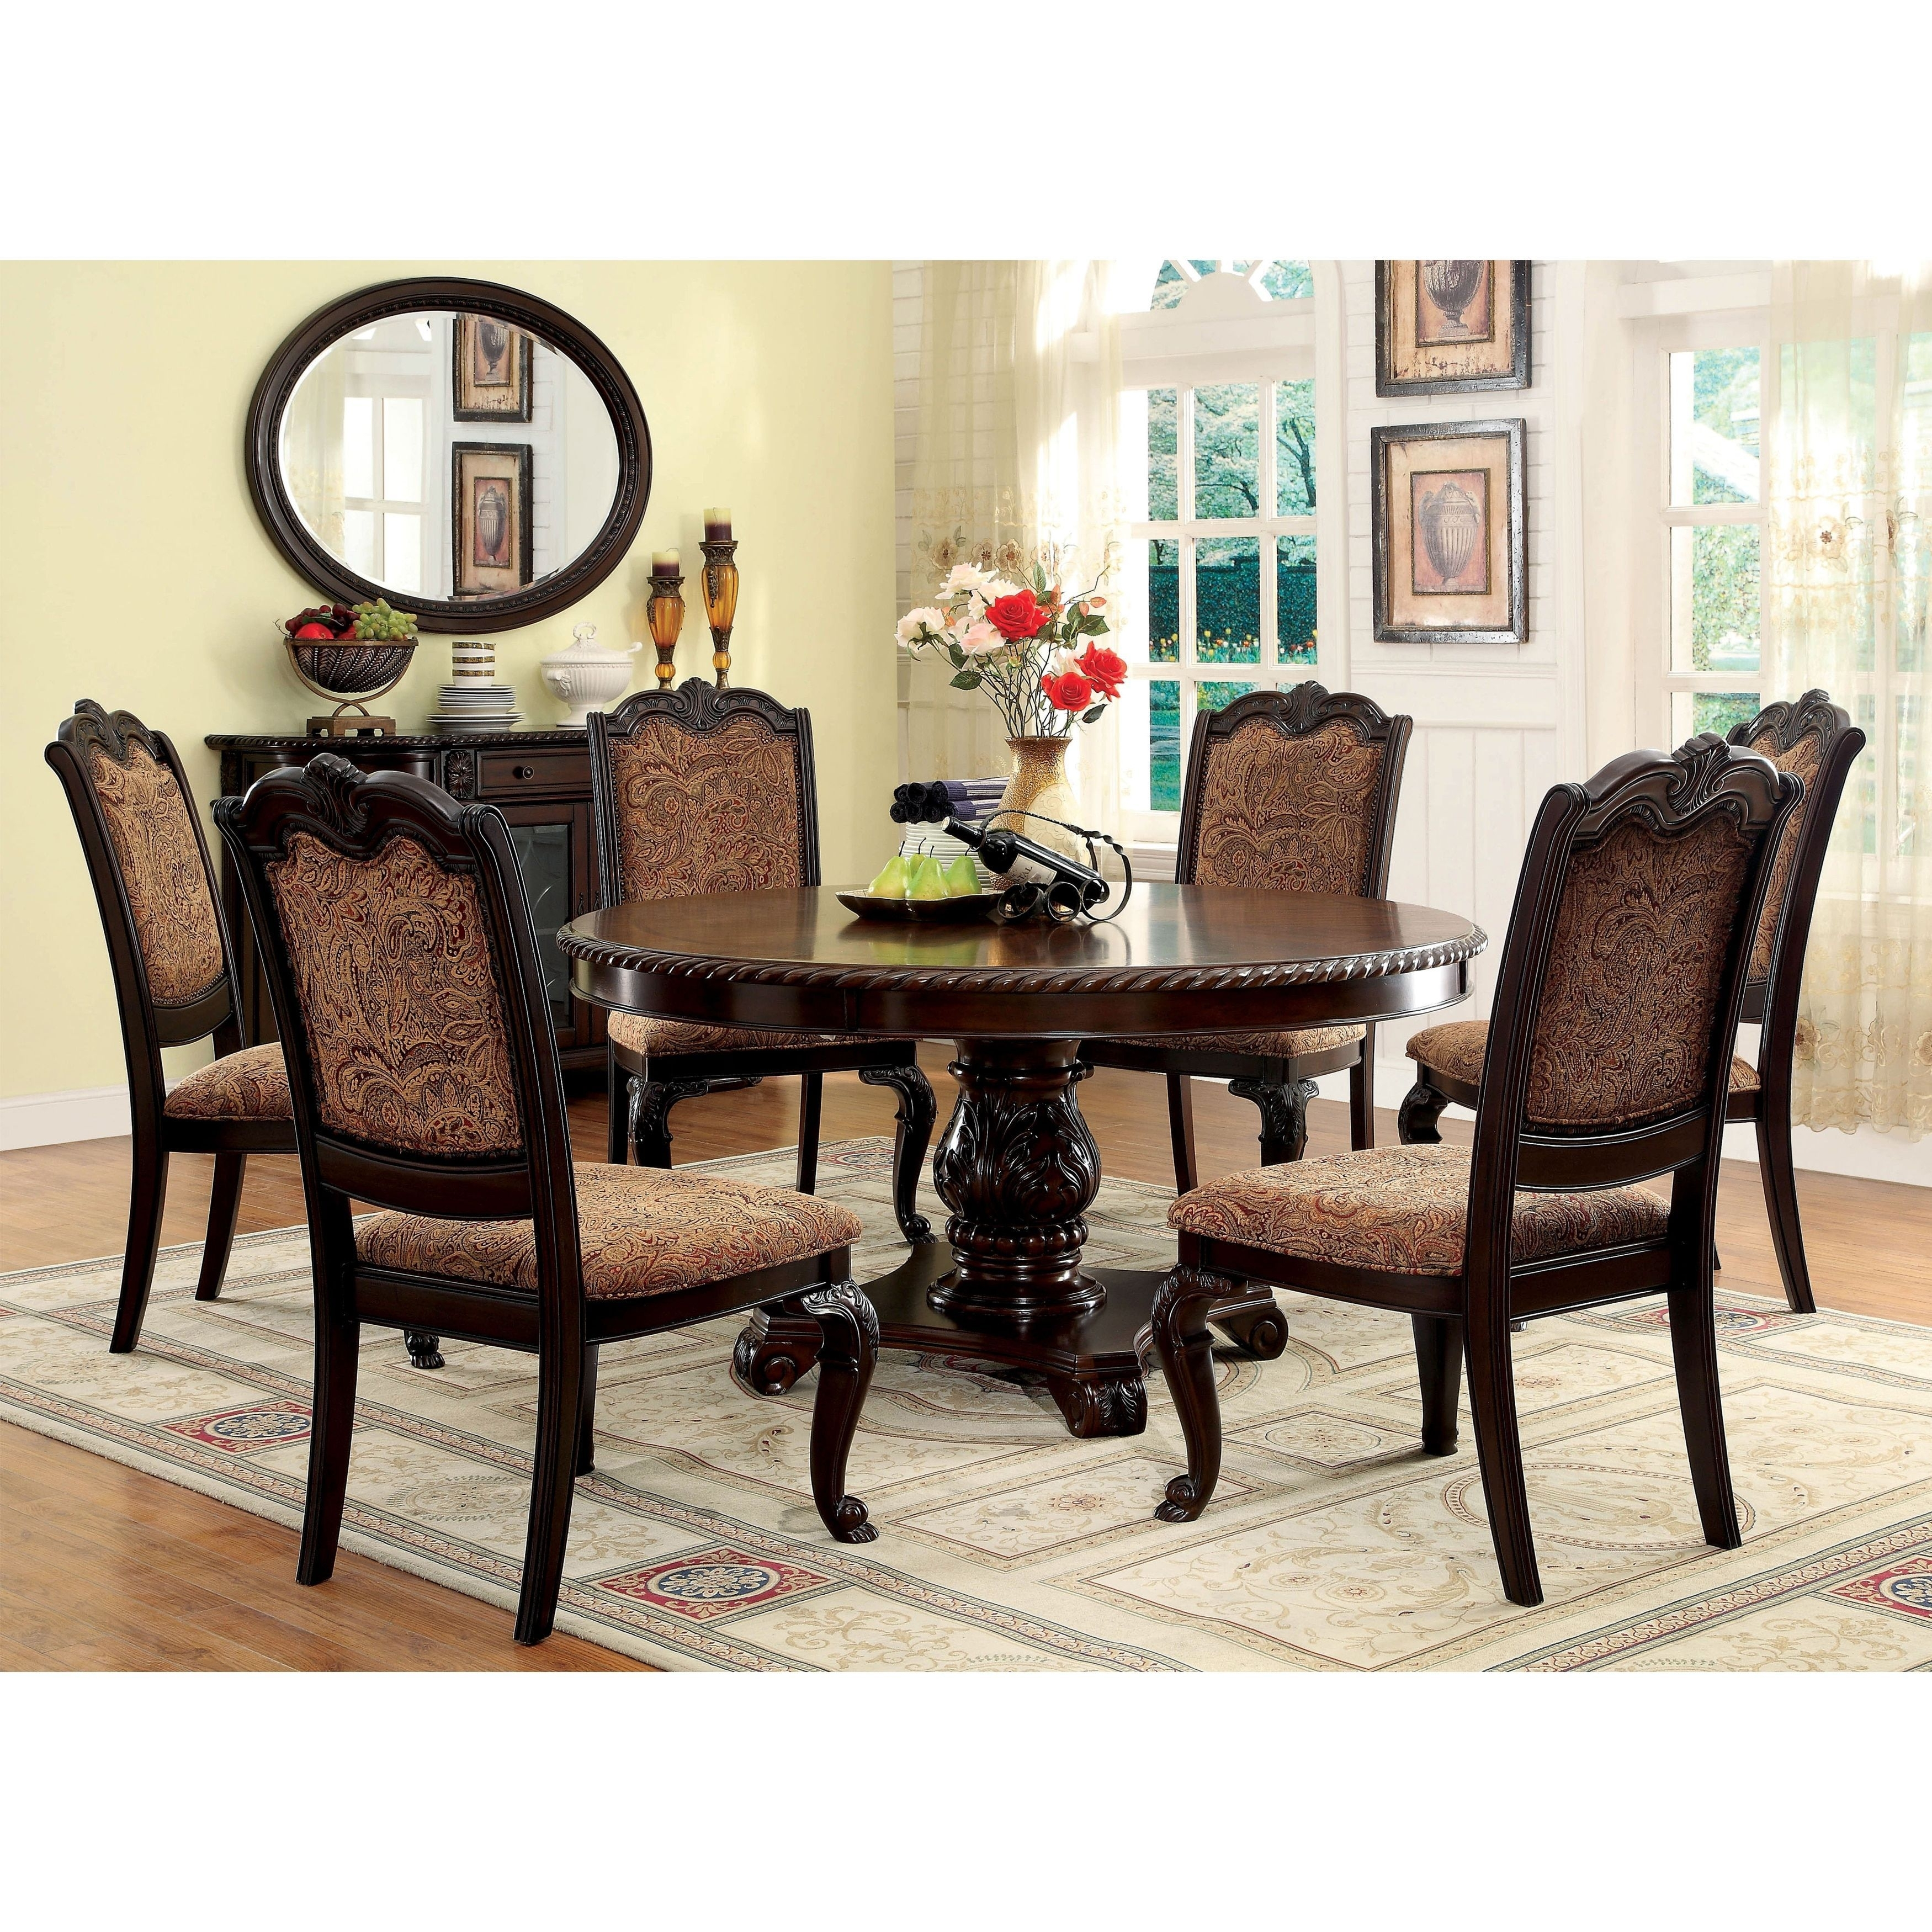 Furniture Of America Oskarre Iii Brown Cherry (Red) 7 Piece Formal Inside Newest Norwood 7 Piece Rectangle Extension Dining Sets (View 11 of 20)